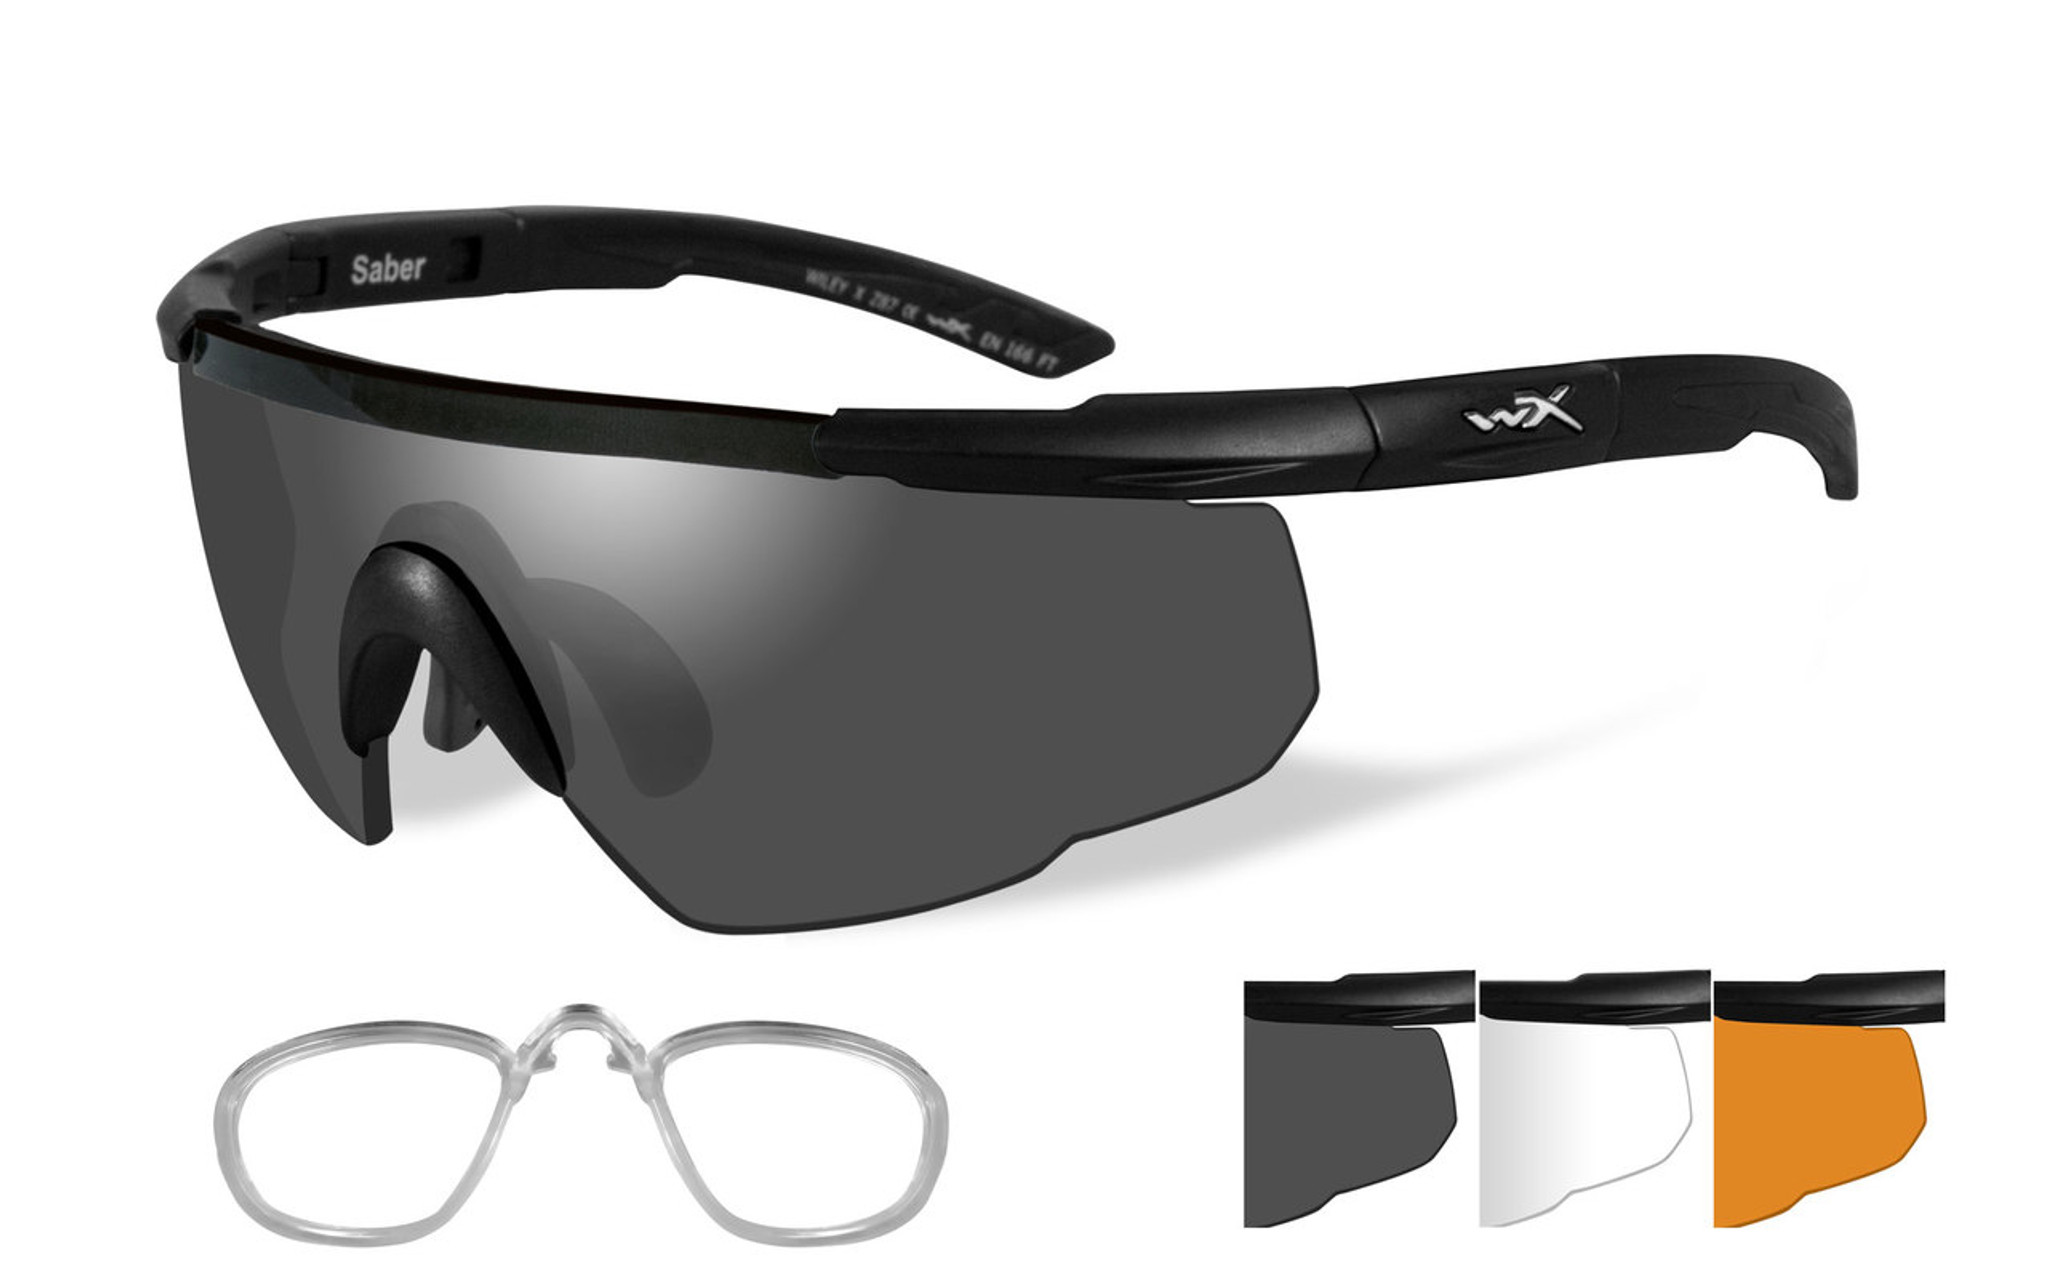 6dcc5e5b167f Wiley X Saber Advanced | Three Lens w/ Matte Black Frame + RX Insert ...